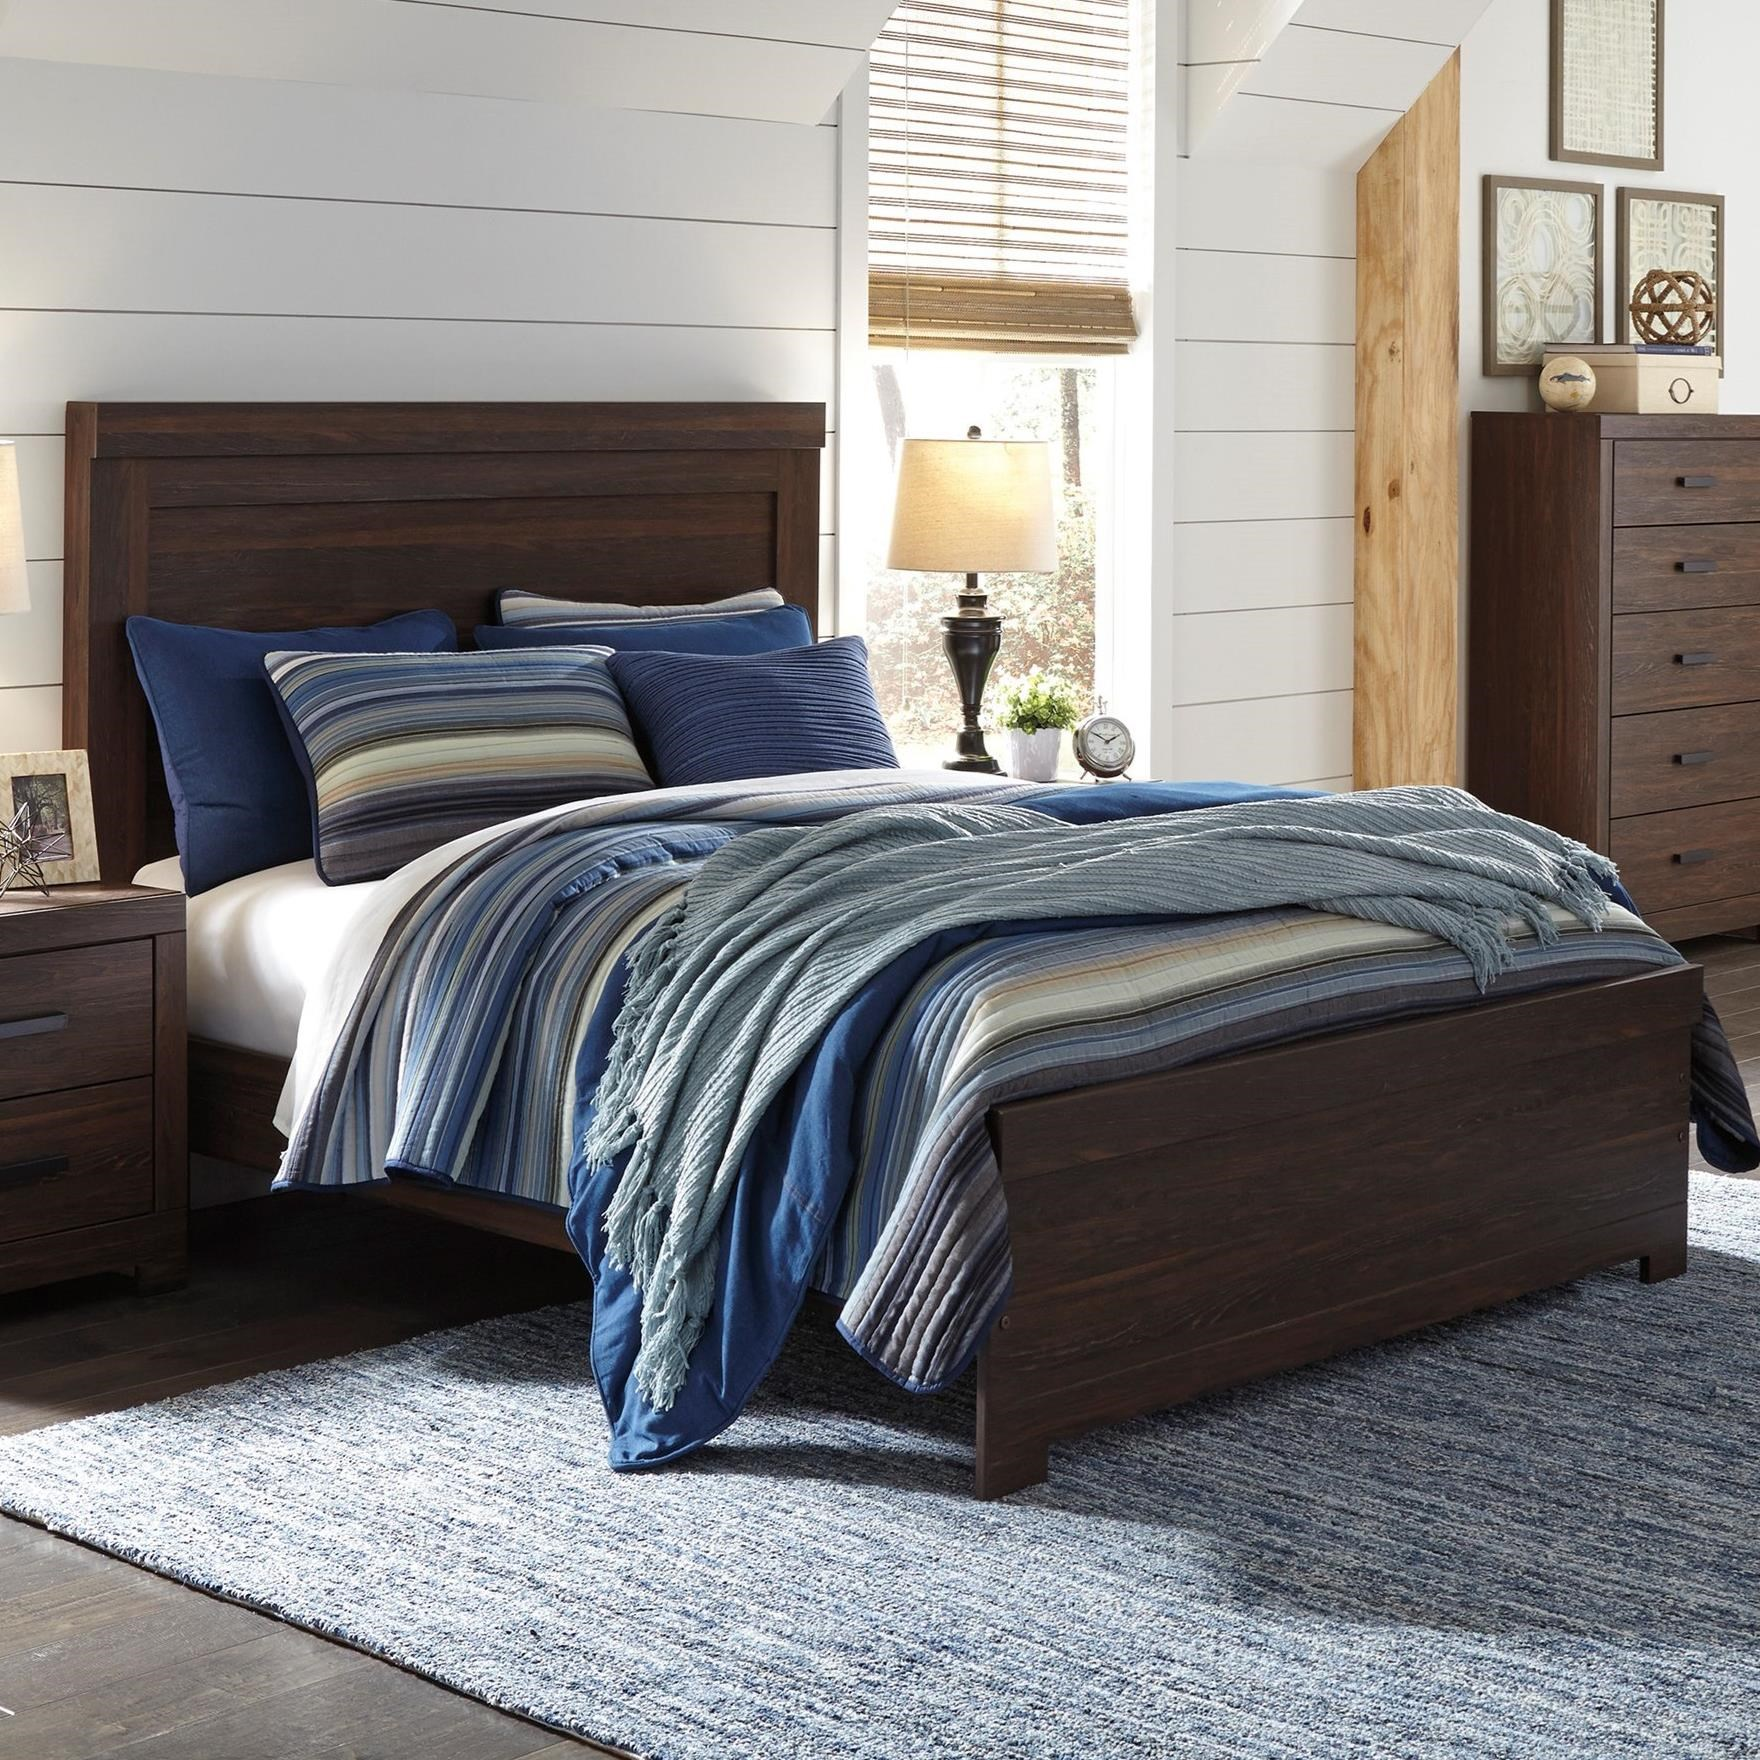 Signature design by ashley arkaline king panel bed royal for Panel bed mattress